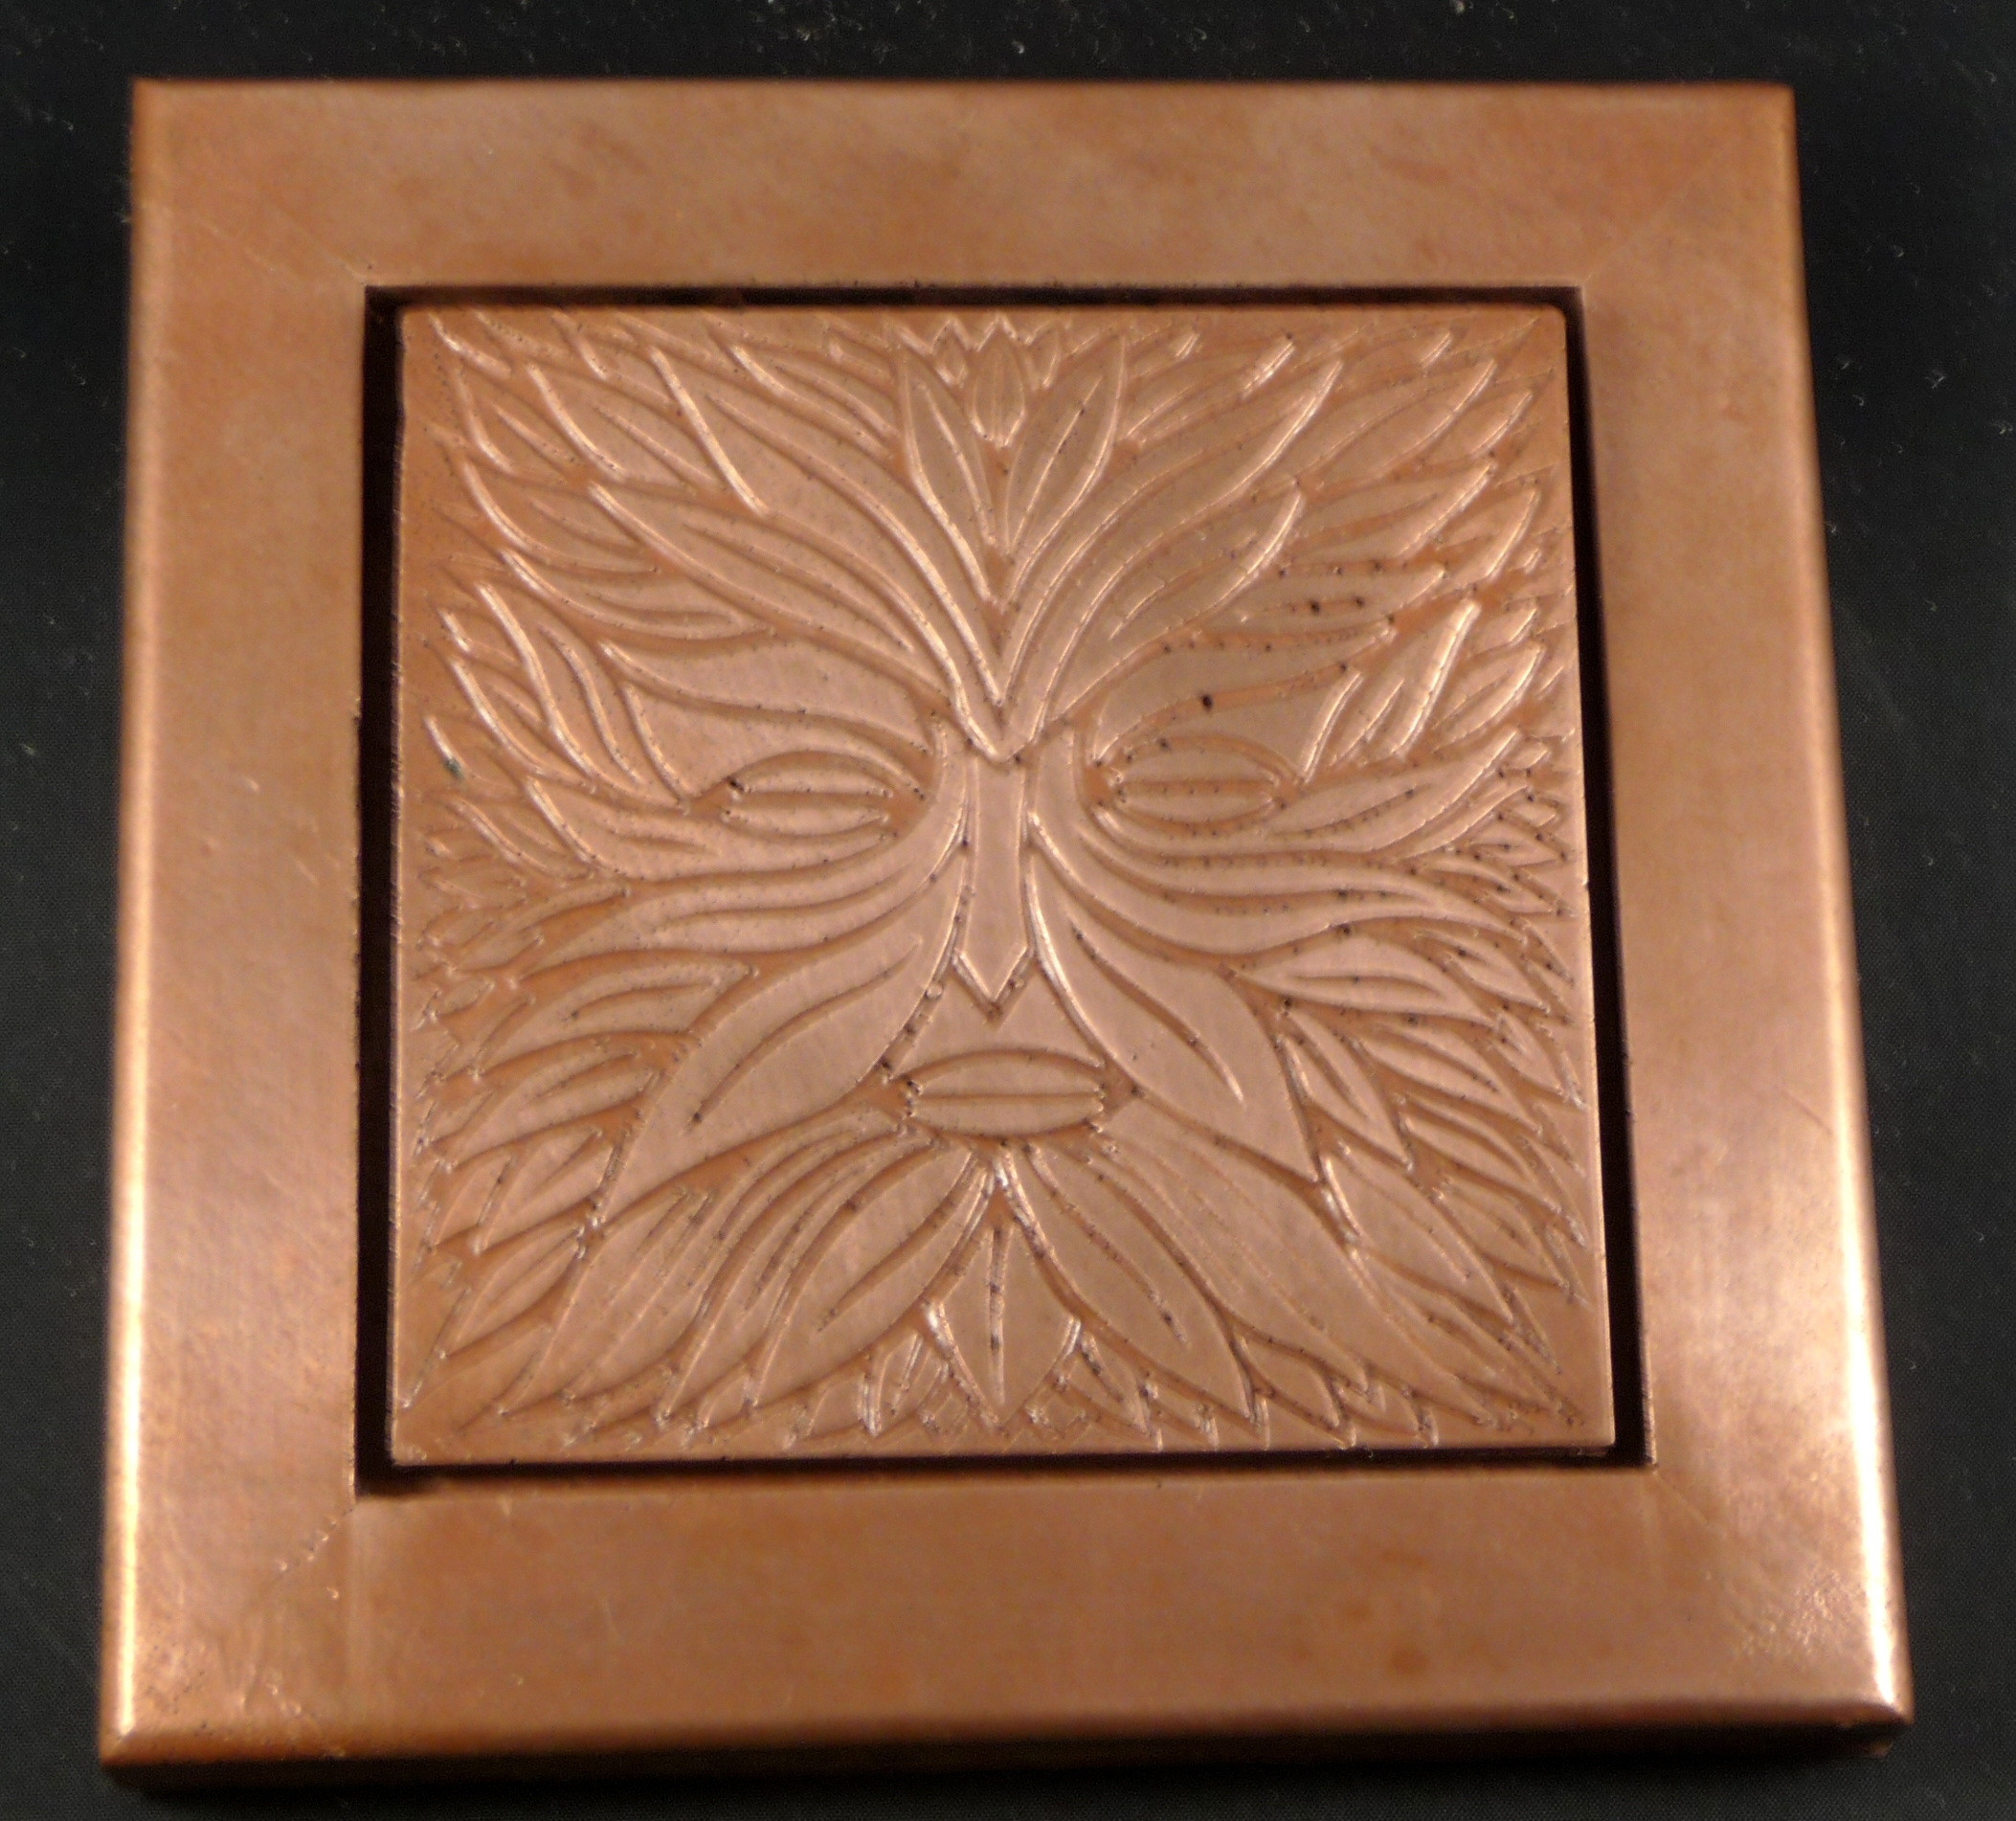 Copper Tile Wall Decor | Pacifica Tile Art Studio Pertaining To Most Up To Date Copper Wall Art (View 5 of 15)